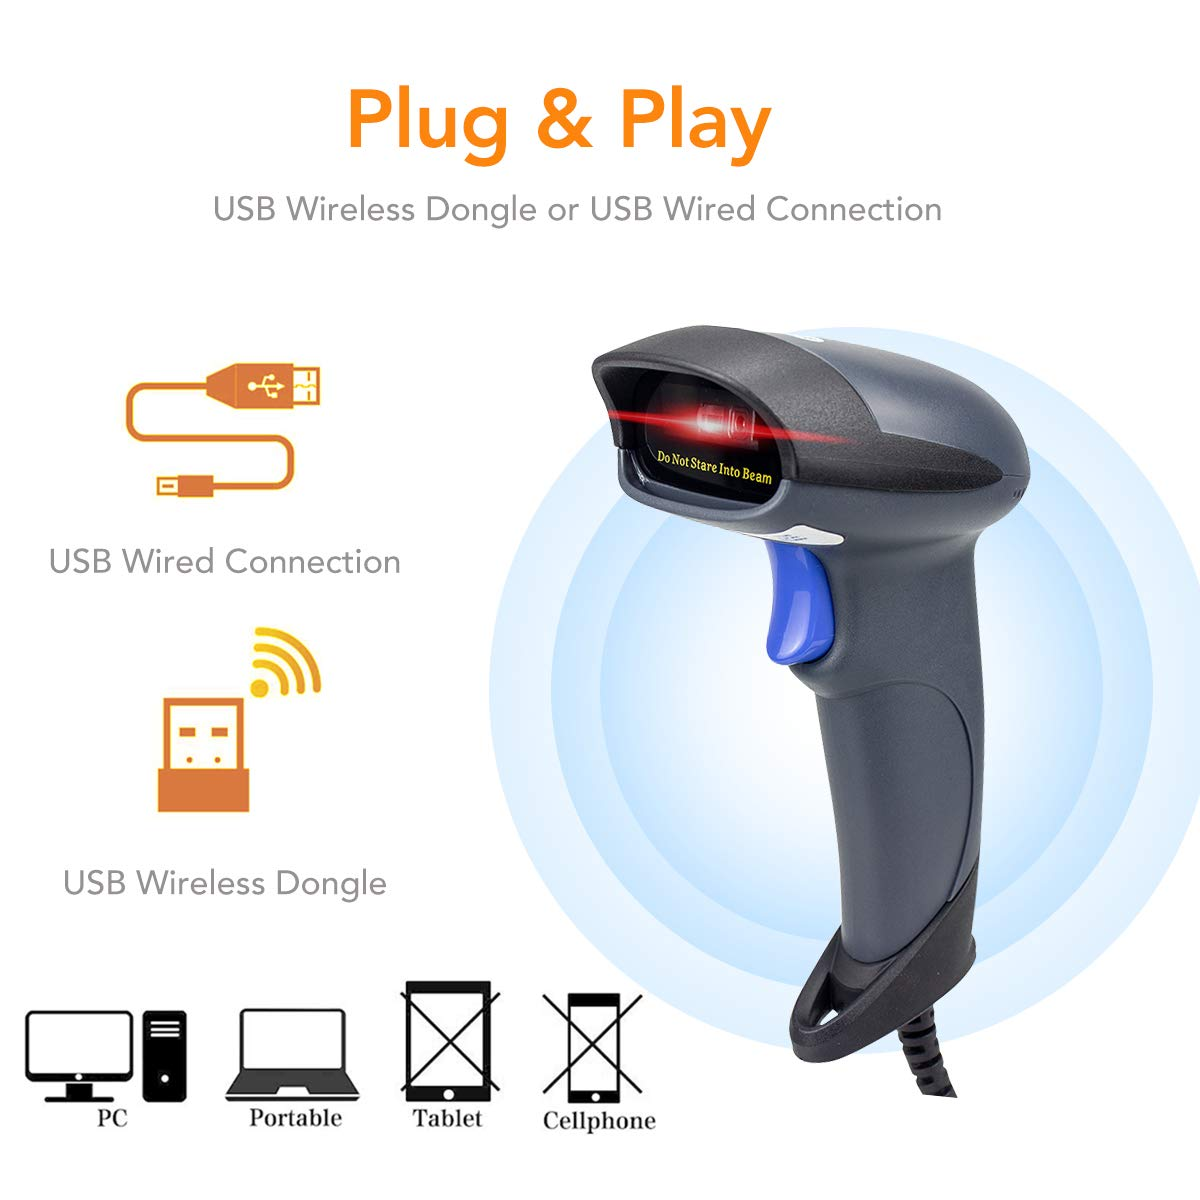 Handheld Wired 1D 2D QR Bar Code Price Scanner with USB Cable for POS PC Laptop Computer Support Windows// Mac OS System Excel and other Software Barcode Scanner POS Laser Reader